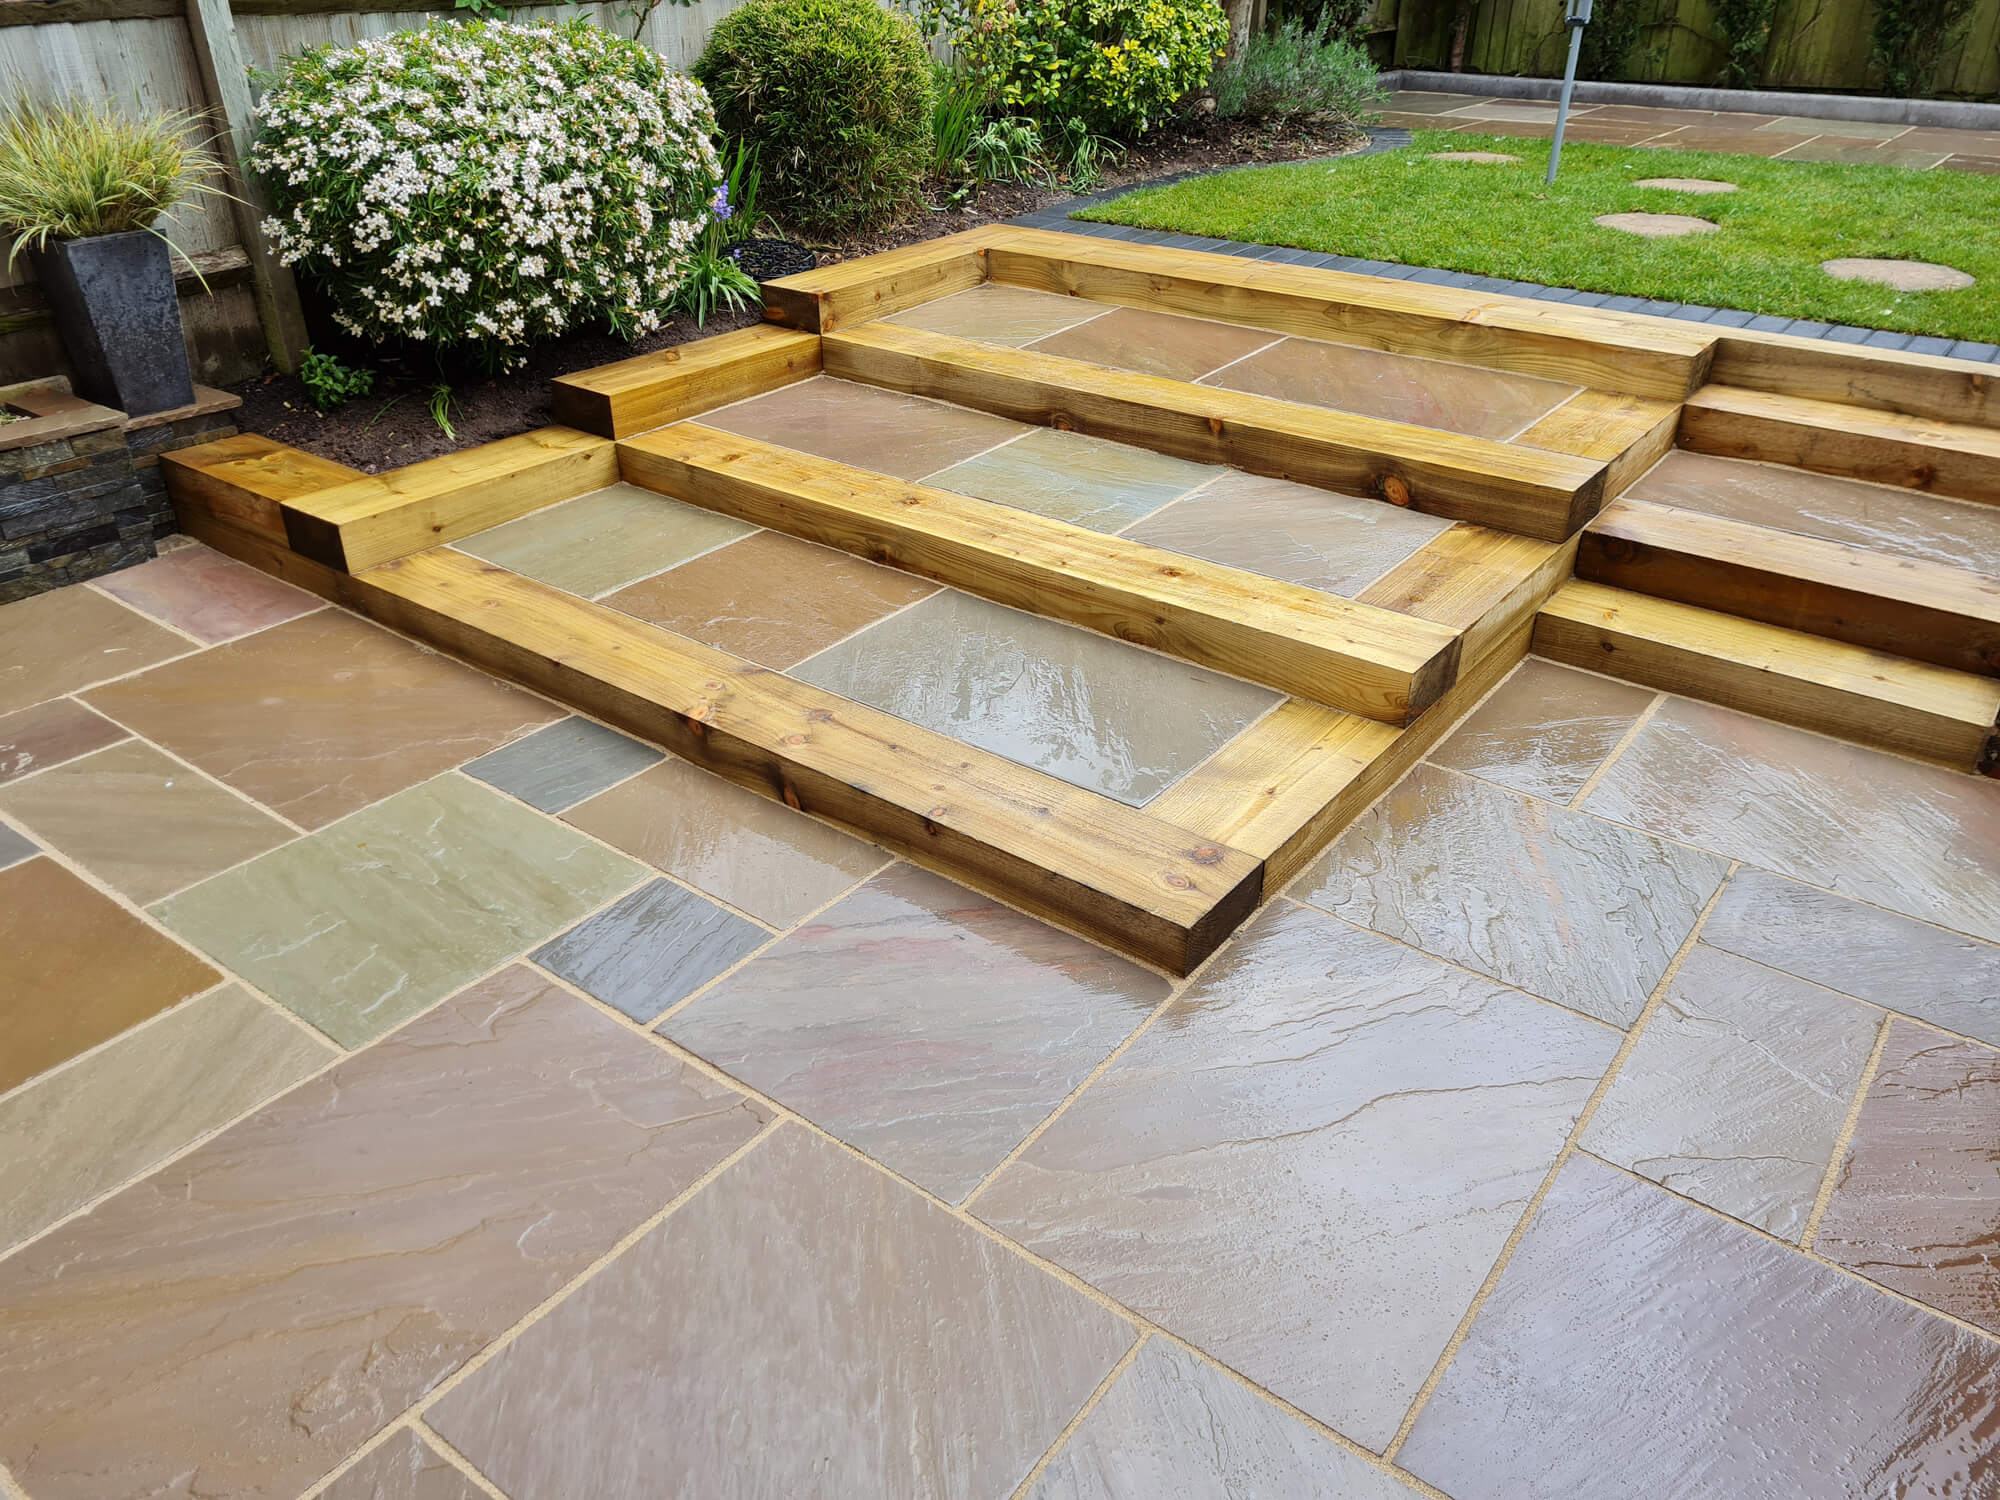 JD Landscapes Patio After Replaced Sleepers and Removed Old Patio with Natural Stone Slabs in Raj Green